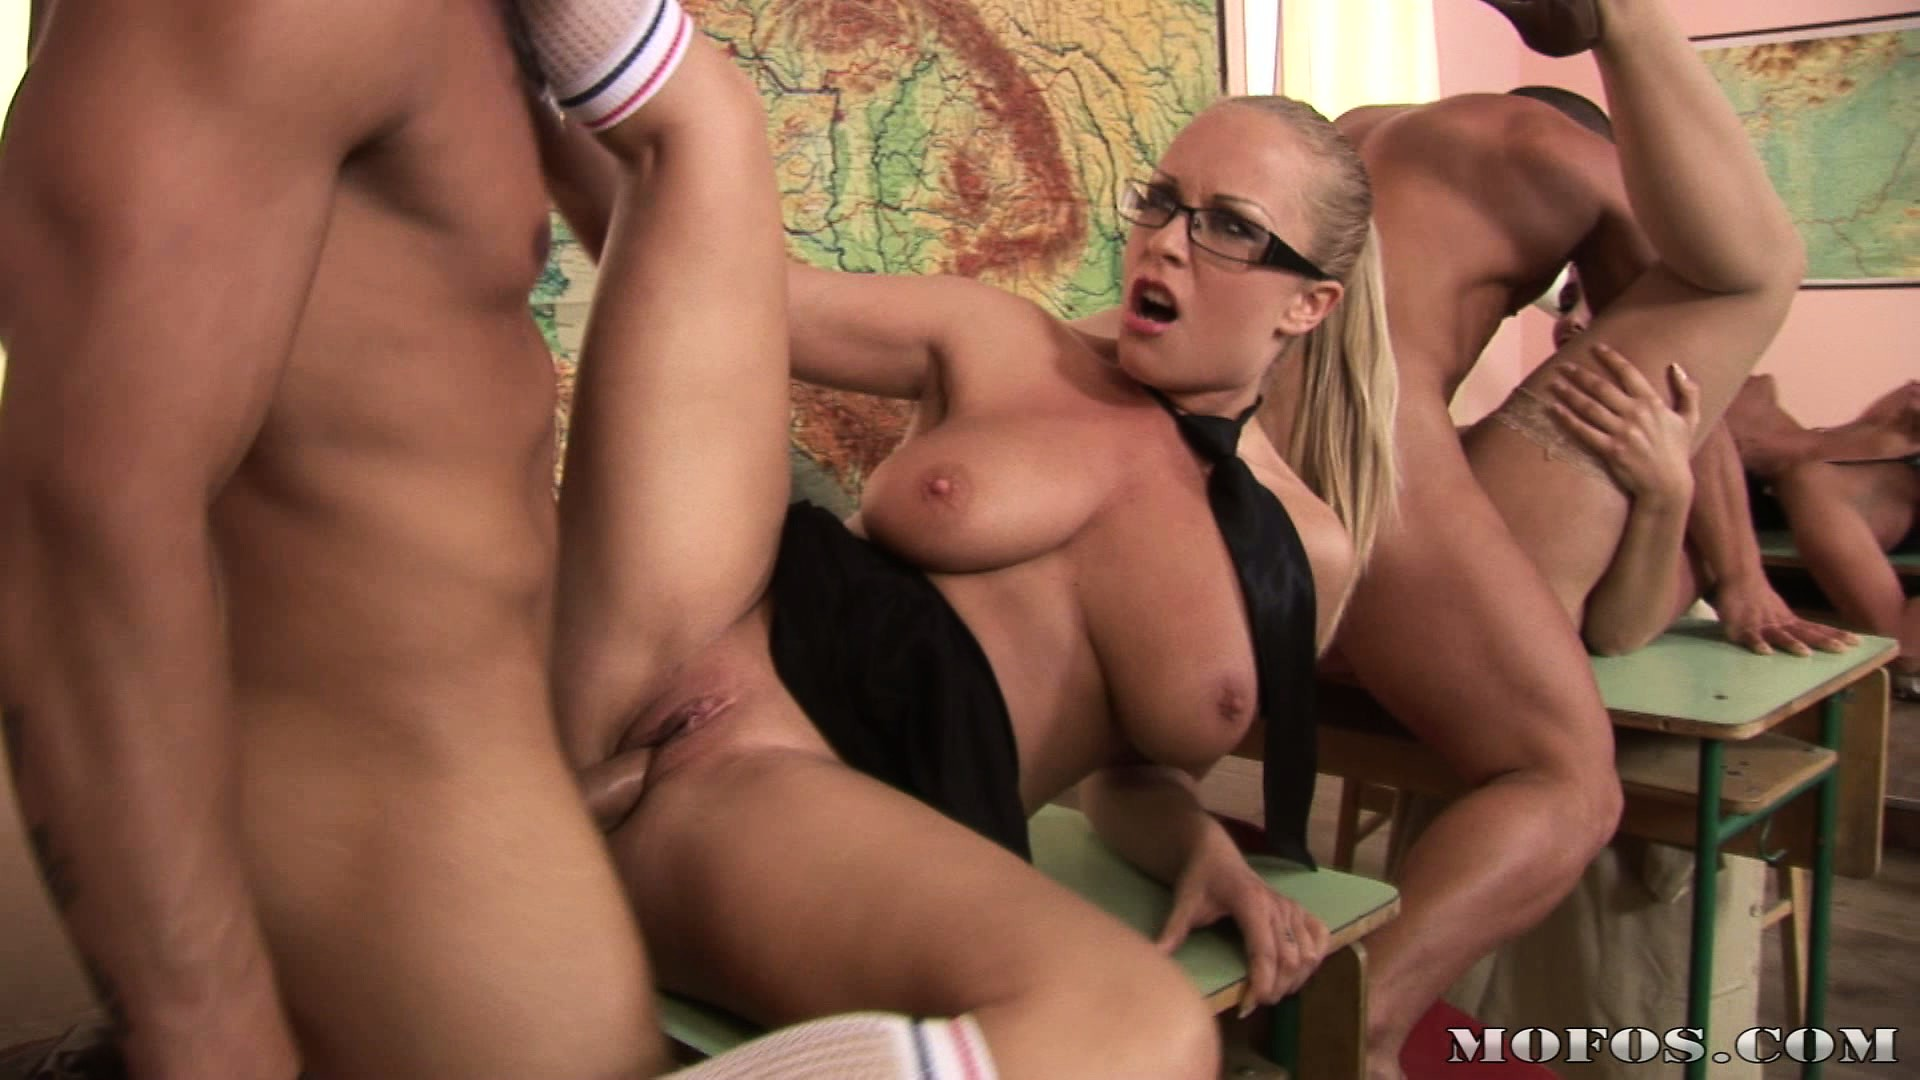 Porn Tube of Classroom Orgy With The Euro Teacher Getting Pounded Just As Hard